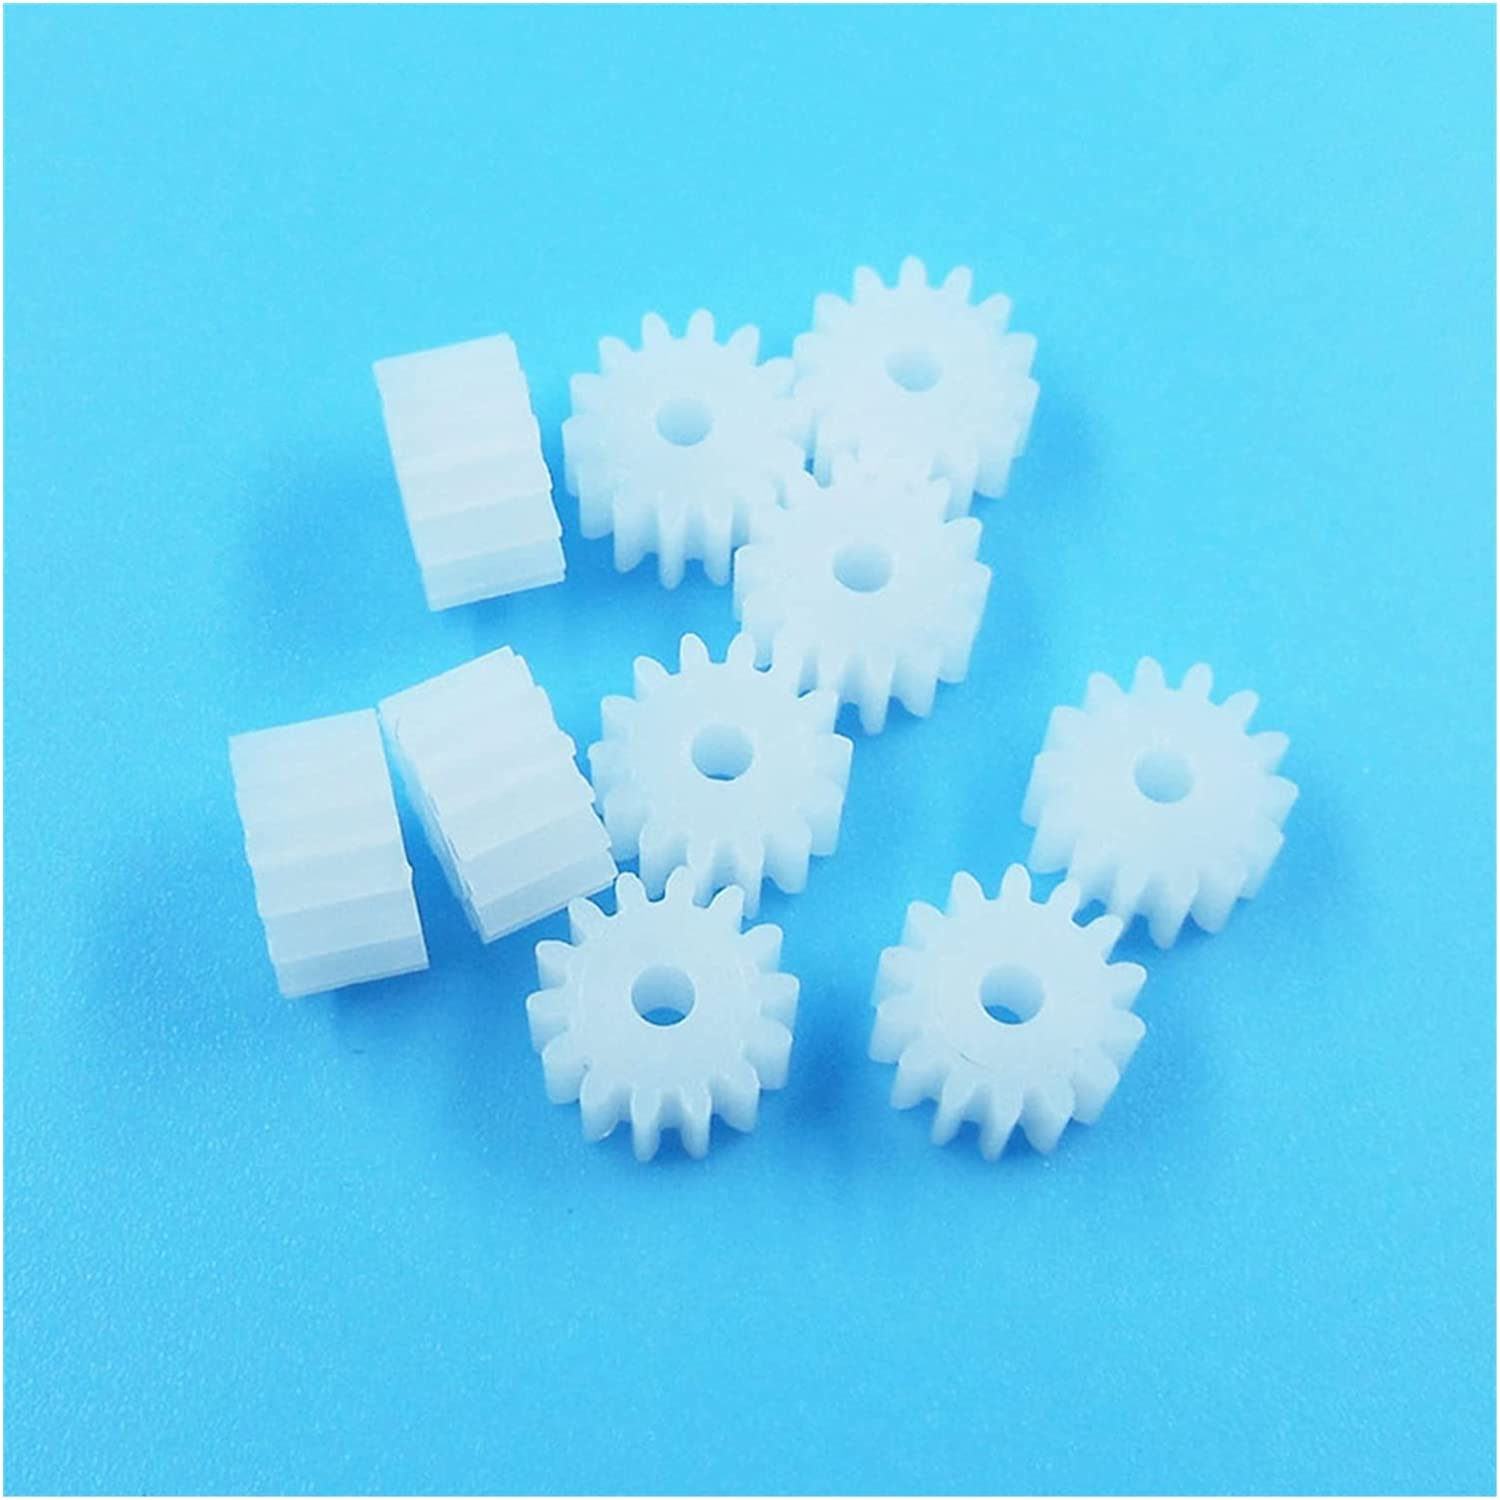 TONGCHAO Tchaogr 142A 142.5A 143A Free Shipping Cheap Quantity limited Bargain Gift Gears 0.5 2mm 14 Modulus Teeth